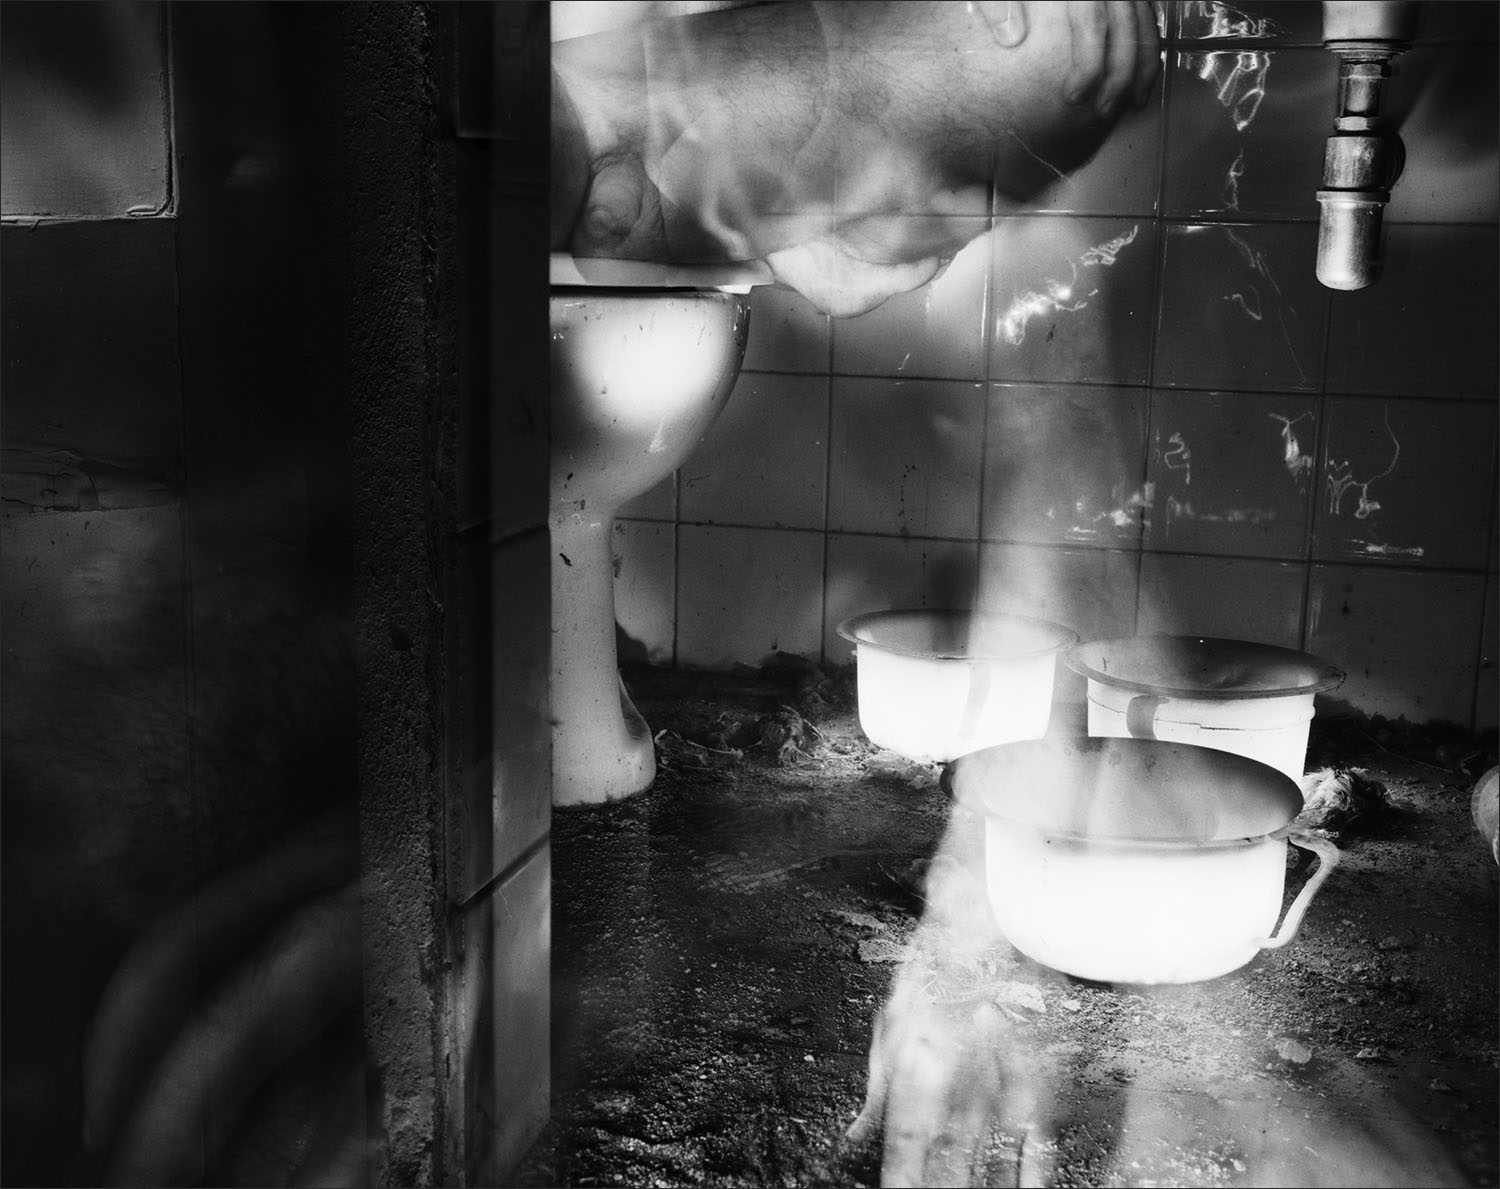 Il Bagno Dei Nonni  (My Grandparent's Bathroom), 1994